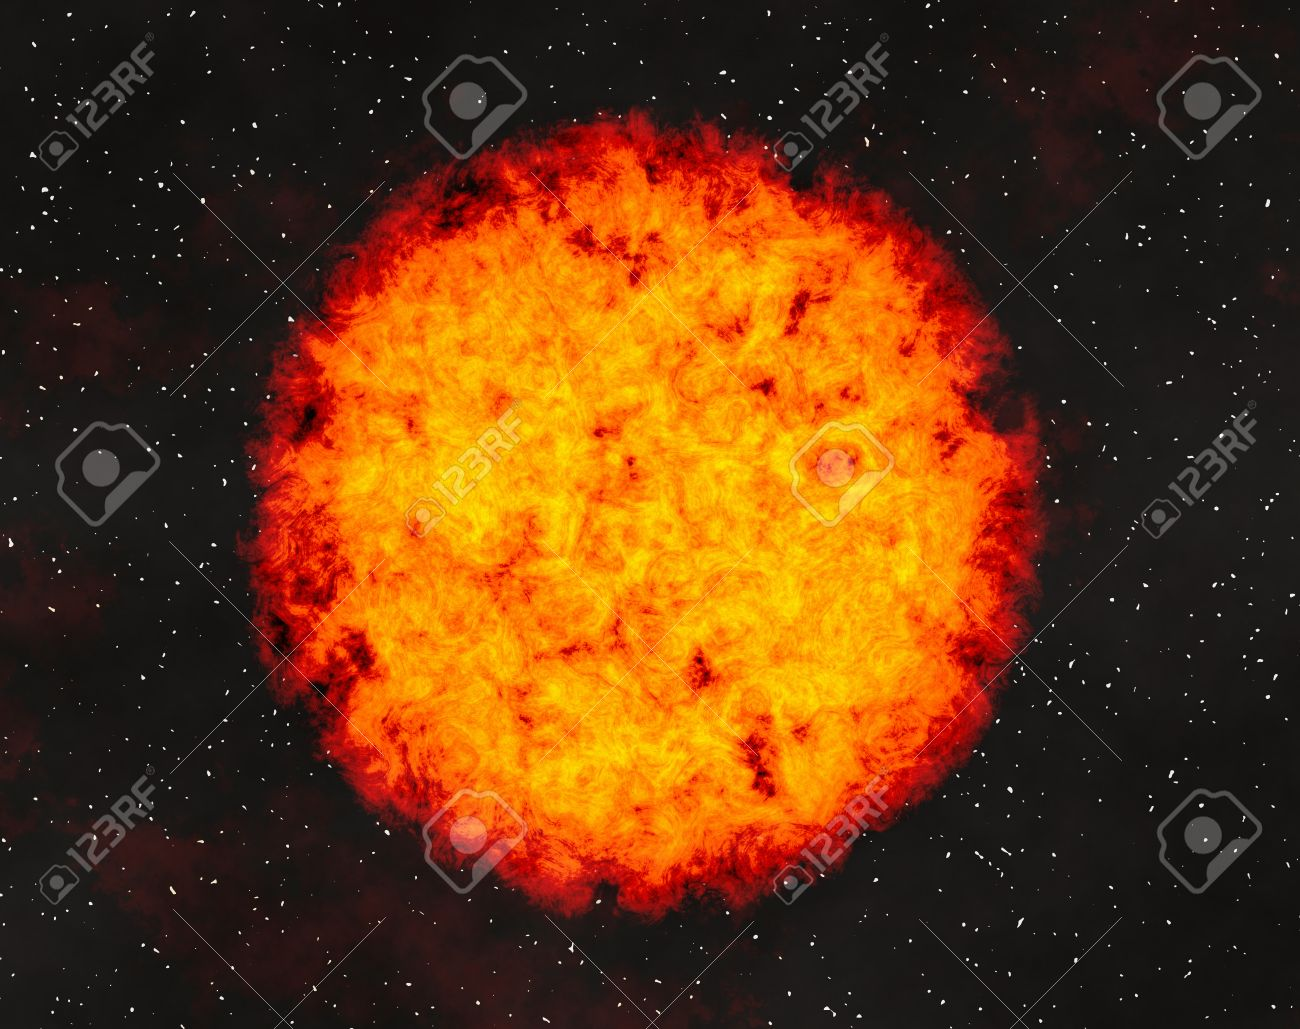 Hot fire planet on space stars backgrounds hot fire planet on space stars backgrounds 36017283 voltagebd Gallery